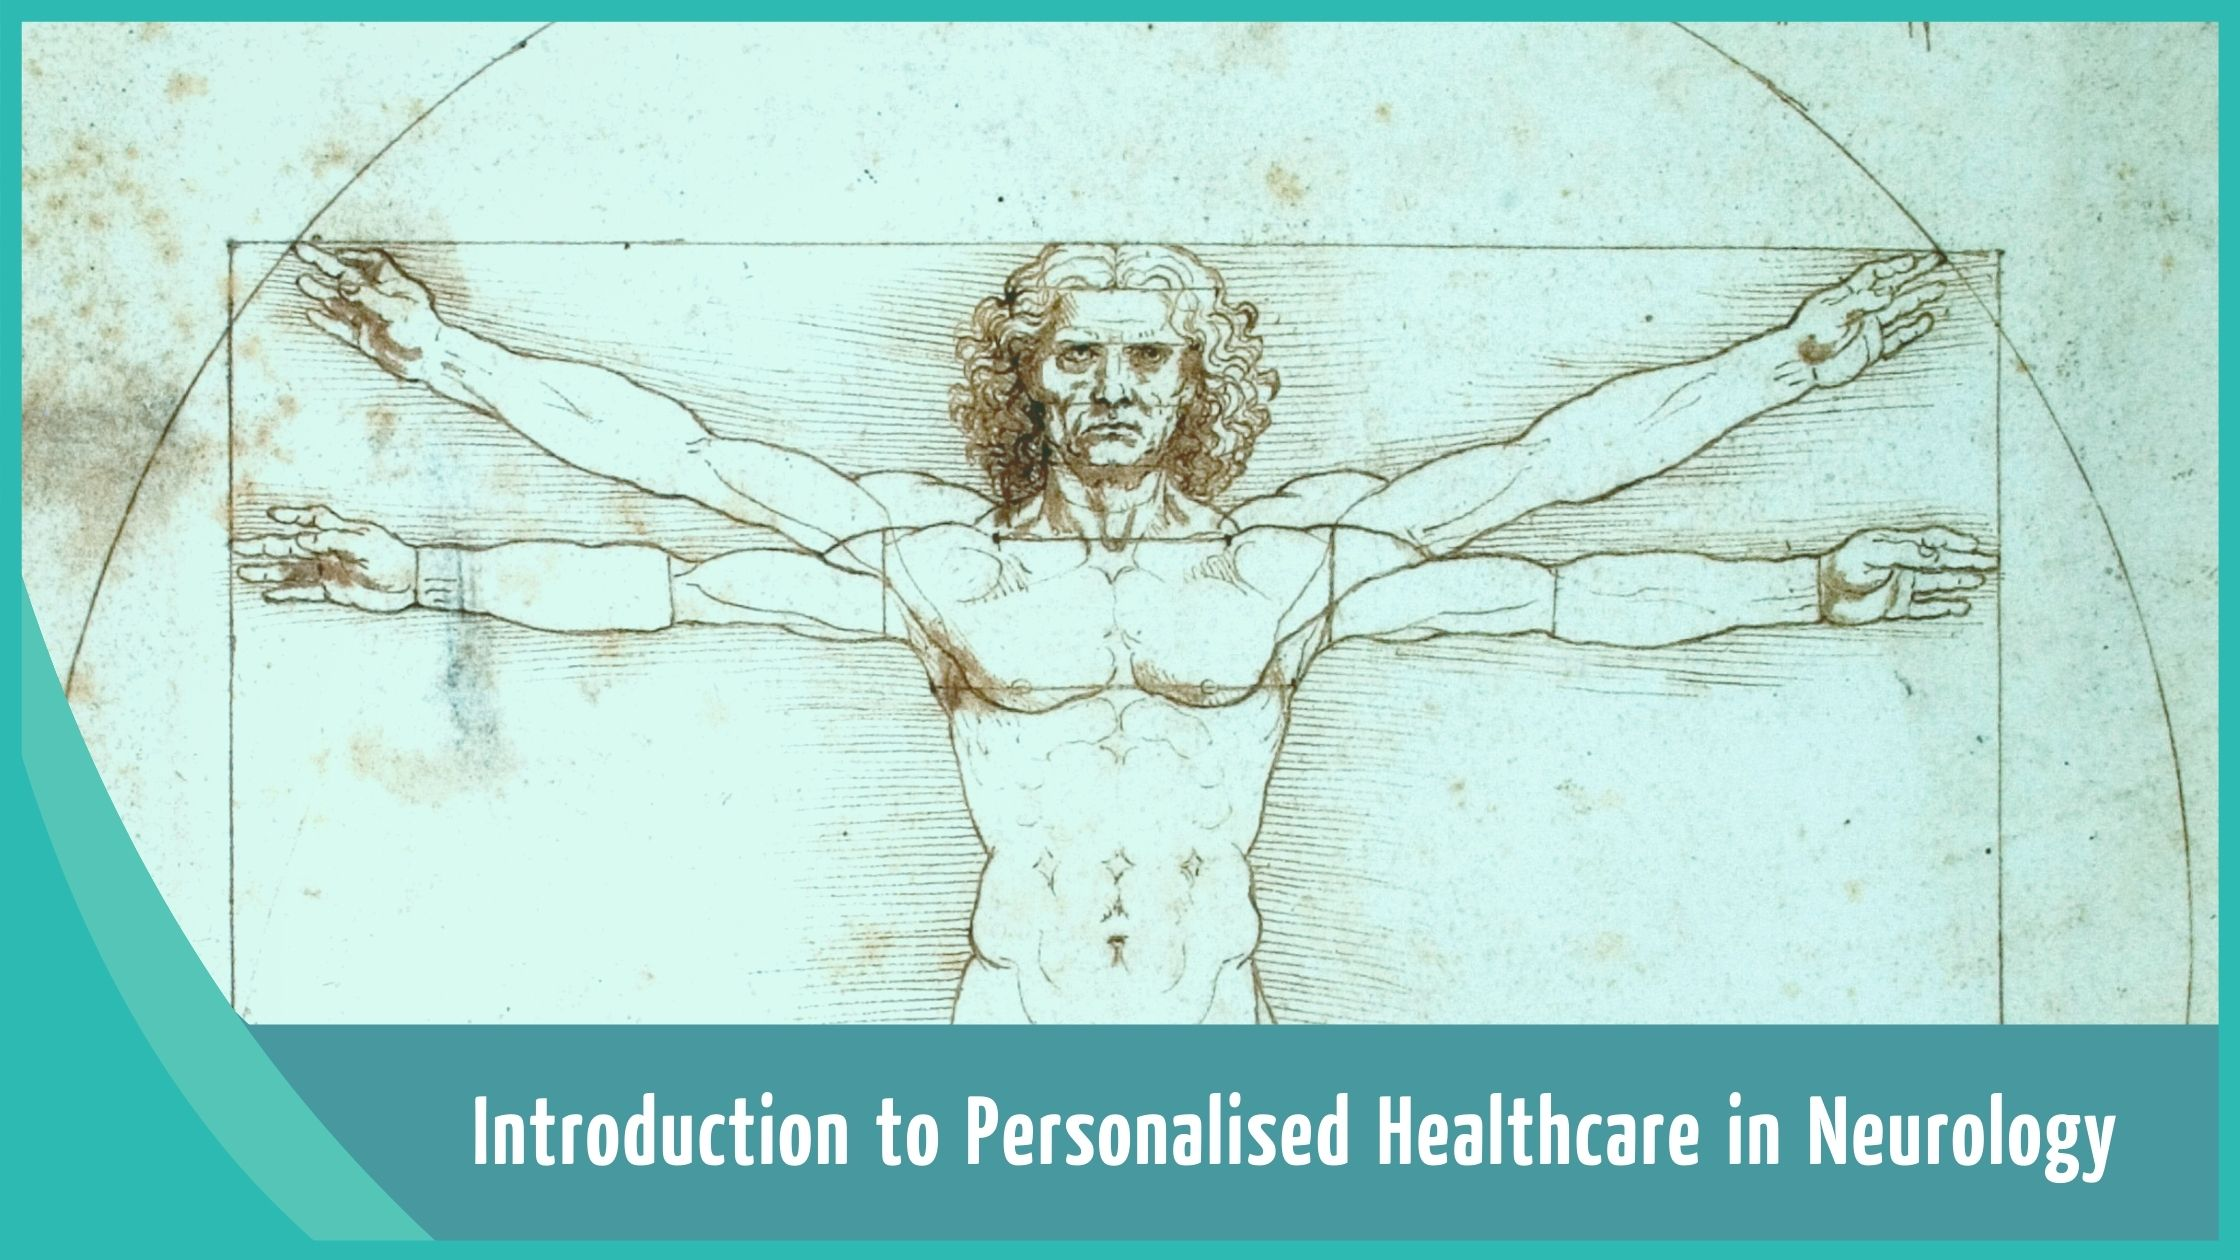 Introduction to Personalised Healthcare in Neurology